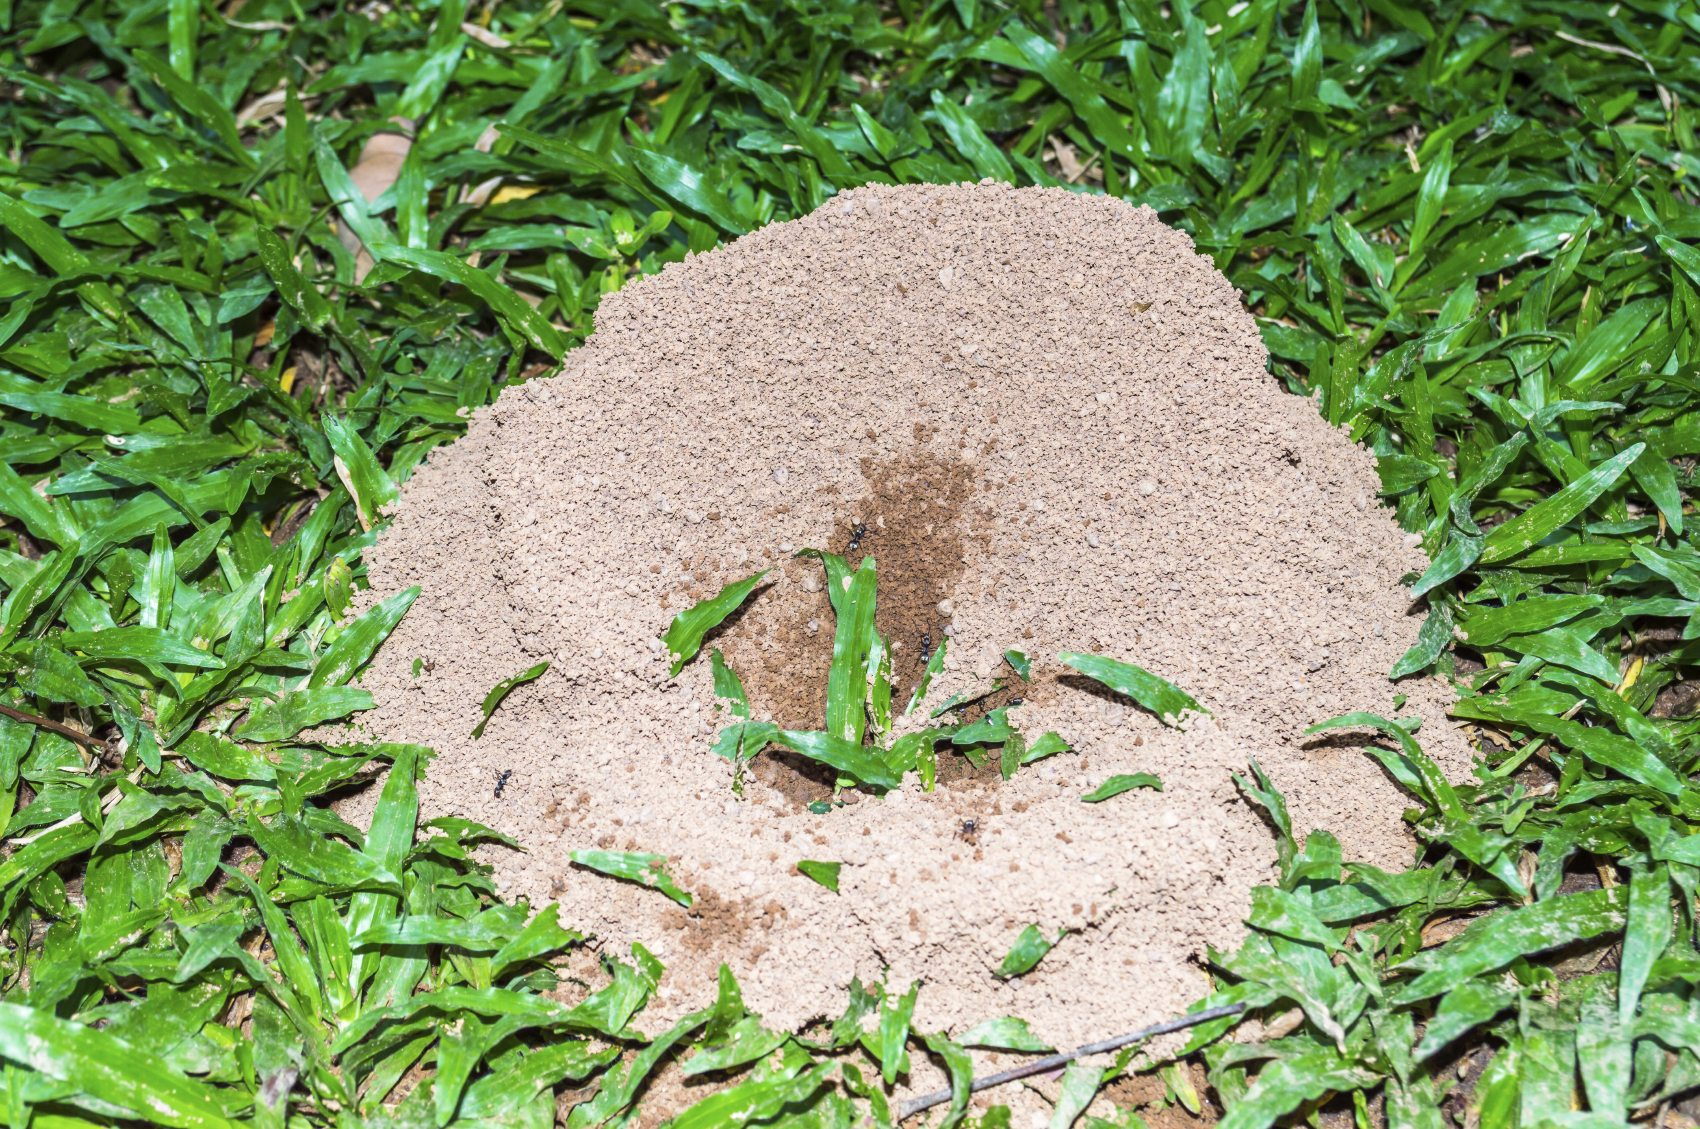 Controlling Ants In The Lawn Tips For Killing Ants In Your Lawn